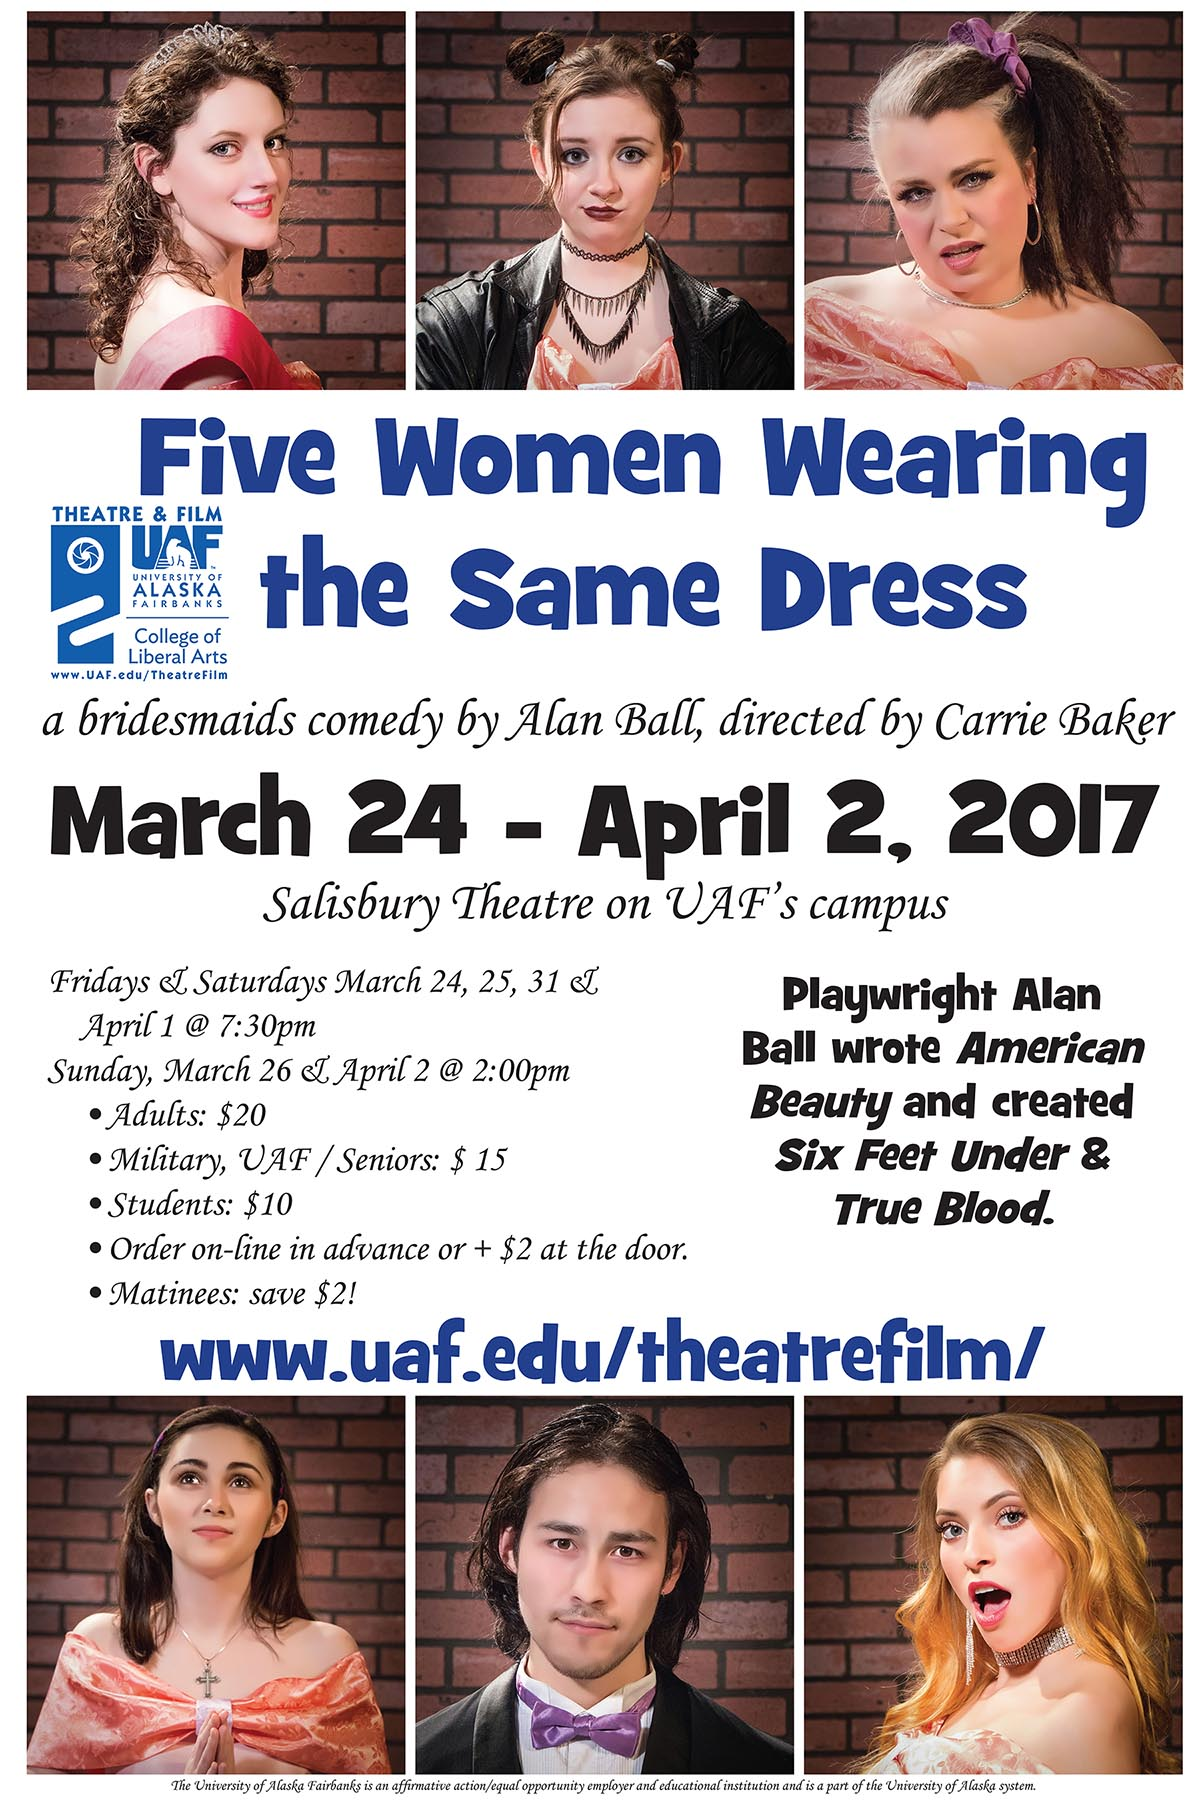 Five Women Wearing the Same Dress poster